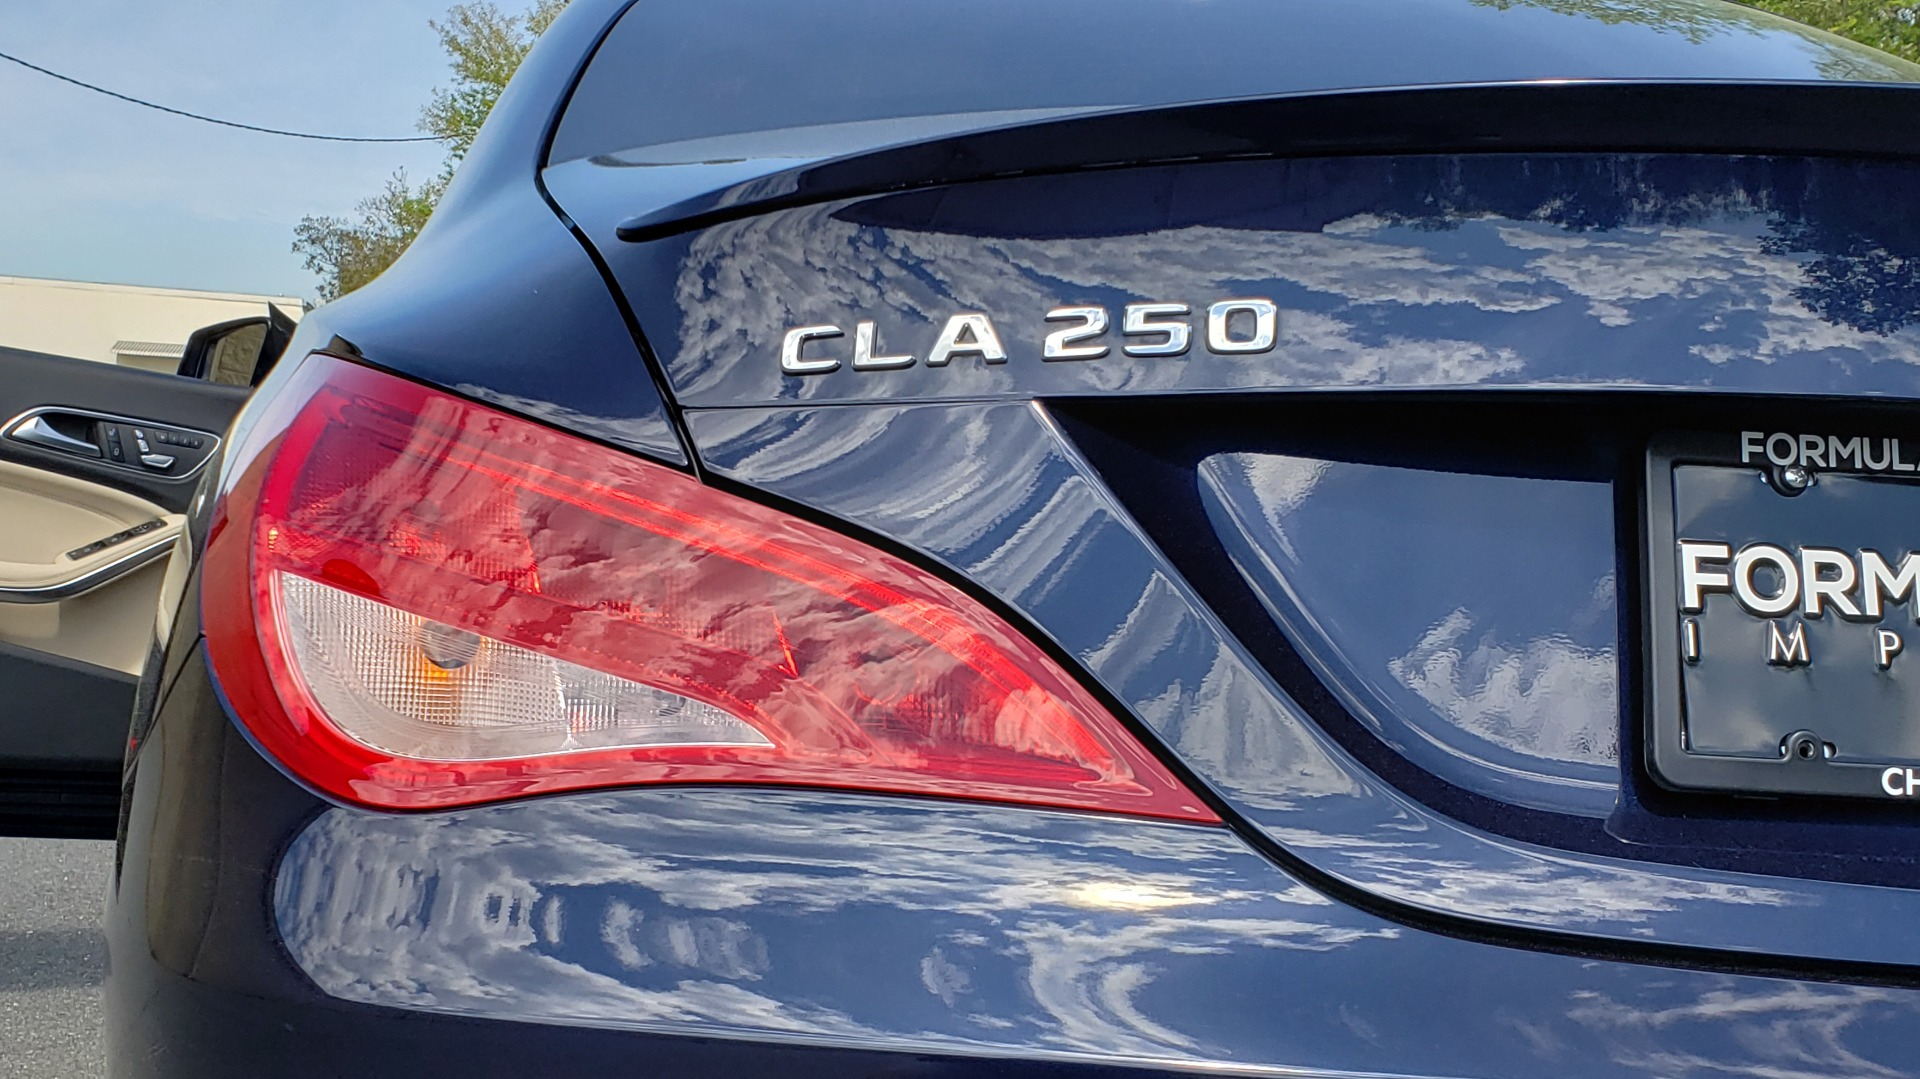 Used 2017 Mercedes-Benz CLA 250 PREMIUM / PANO-ROOF / HK SOUNDS / BSM / REARVIEW for sale Sold at Formula Imports in Charlotte NC 28227 24